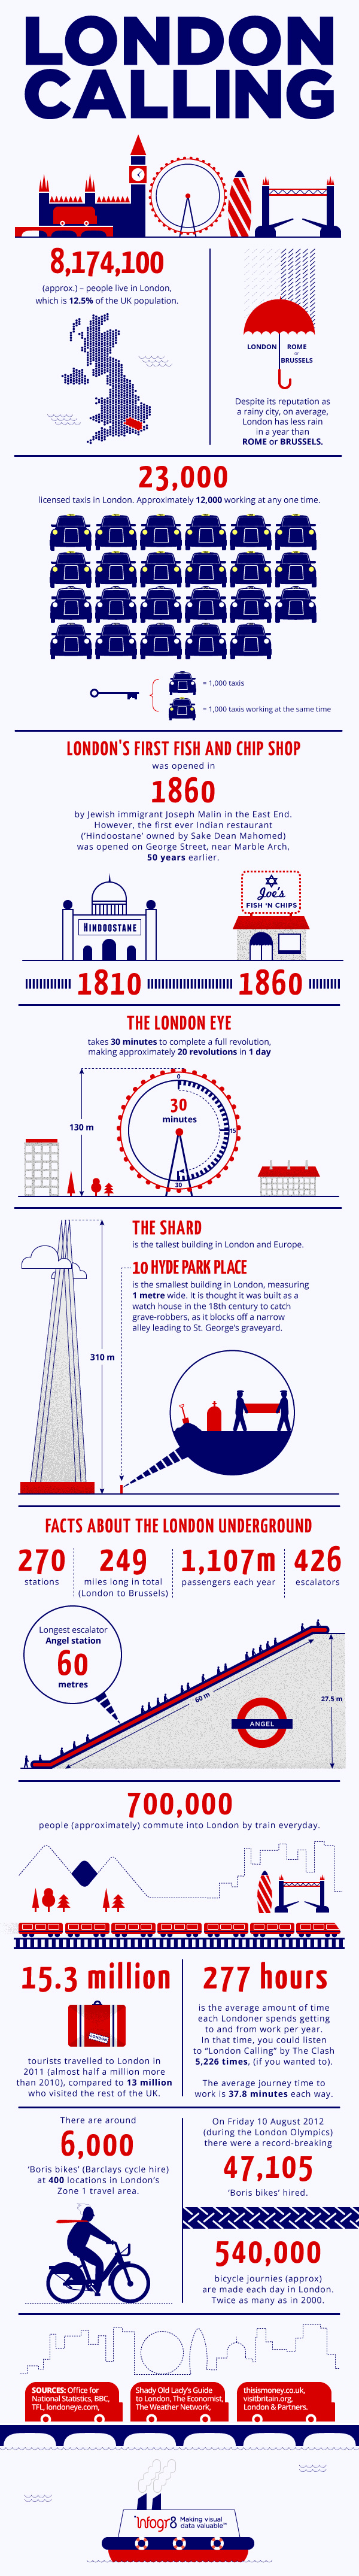 London City Facts-Infographic